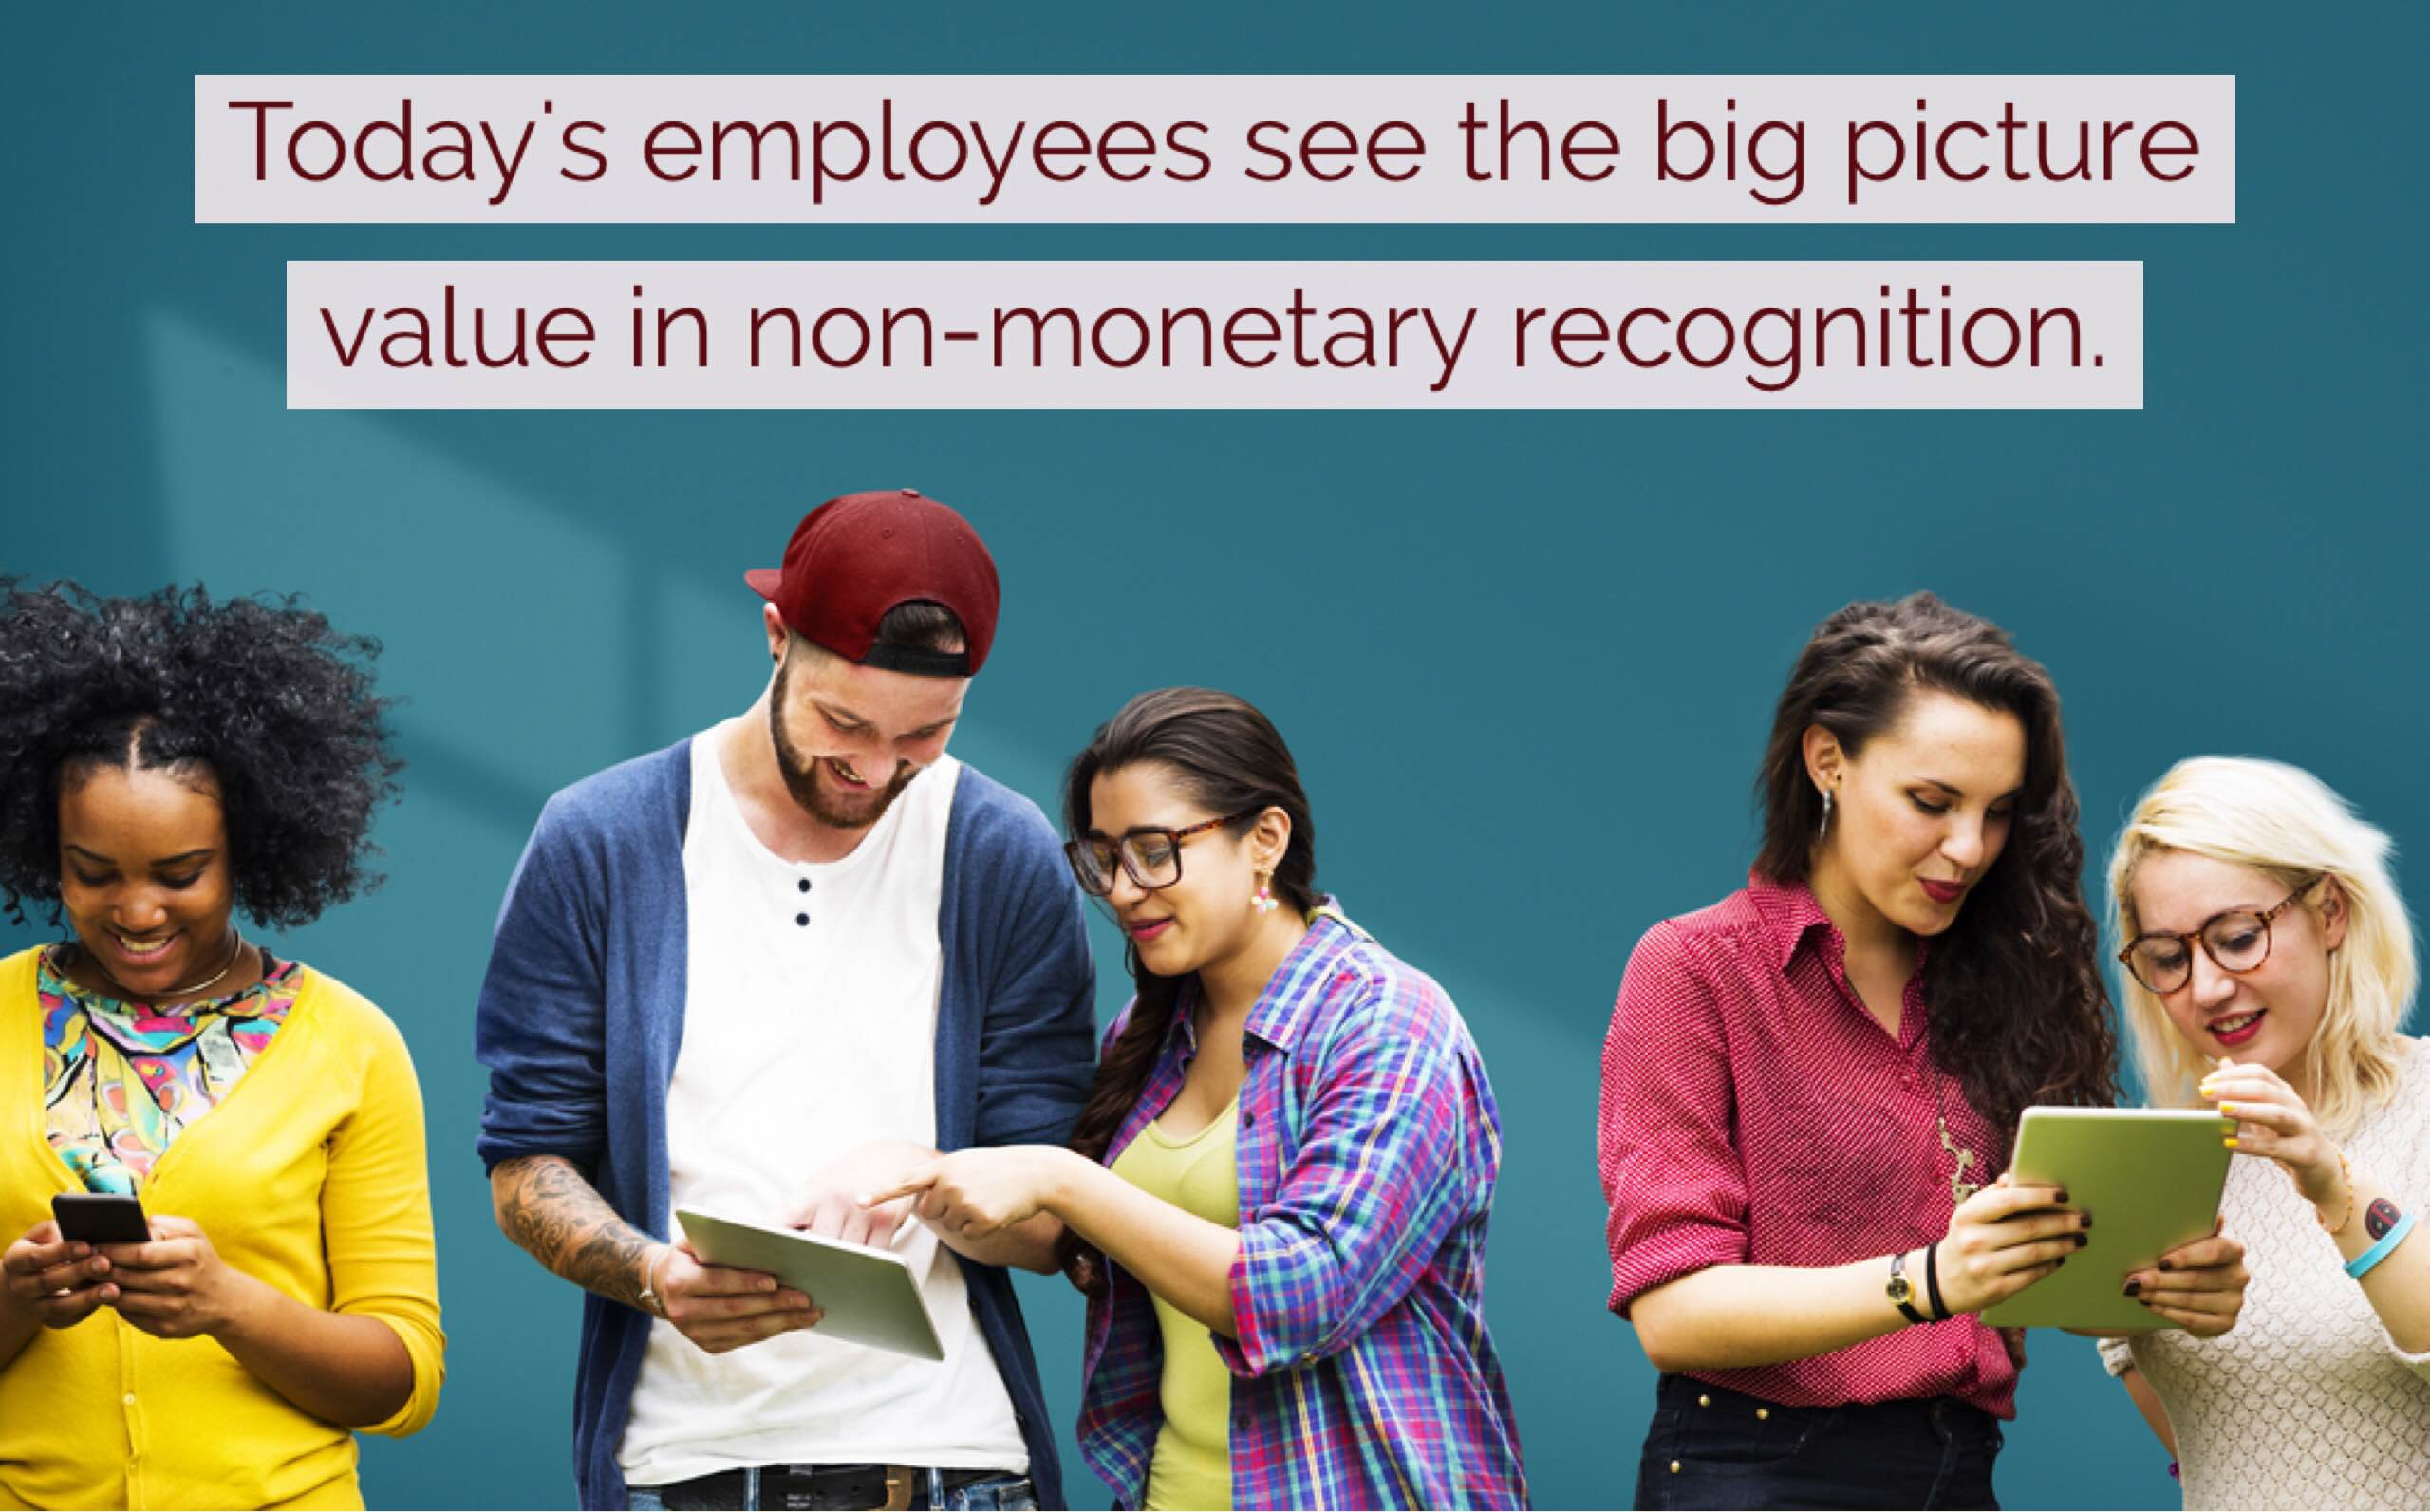 Today's employees see the big picture value in non-monetary recognition | TemboSocial